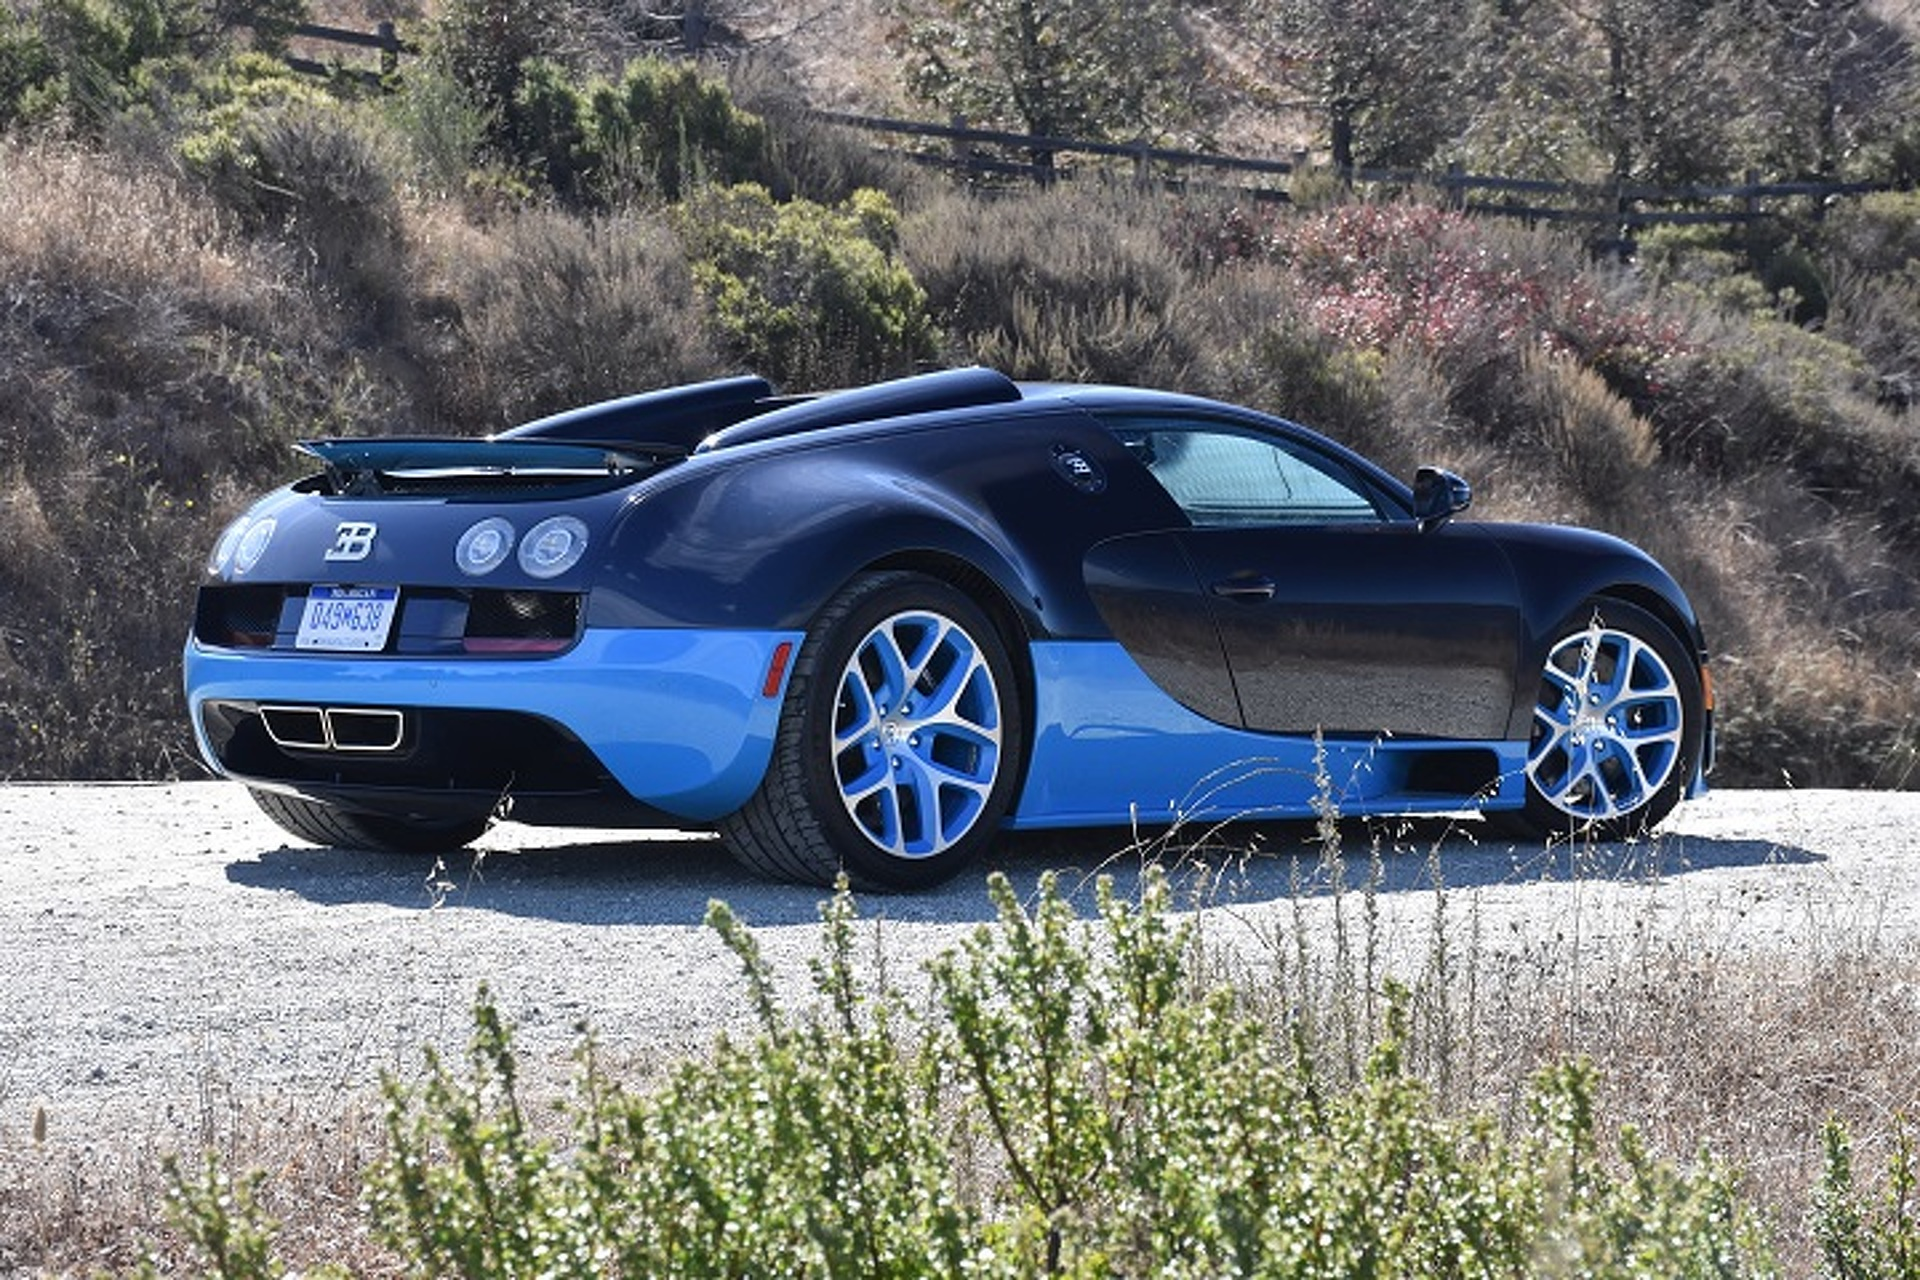 the-bugatti-veyron-is-the-closest-youll-get-to-a-fighter-jet-first-drive Stunning Bugatti Veyron Price Brand New Cars Trend